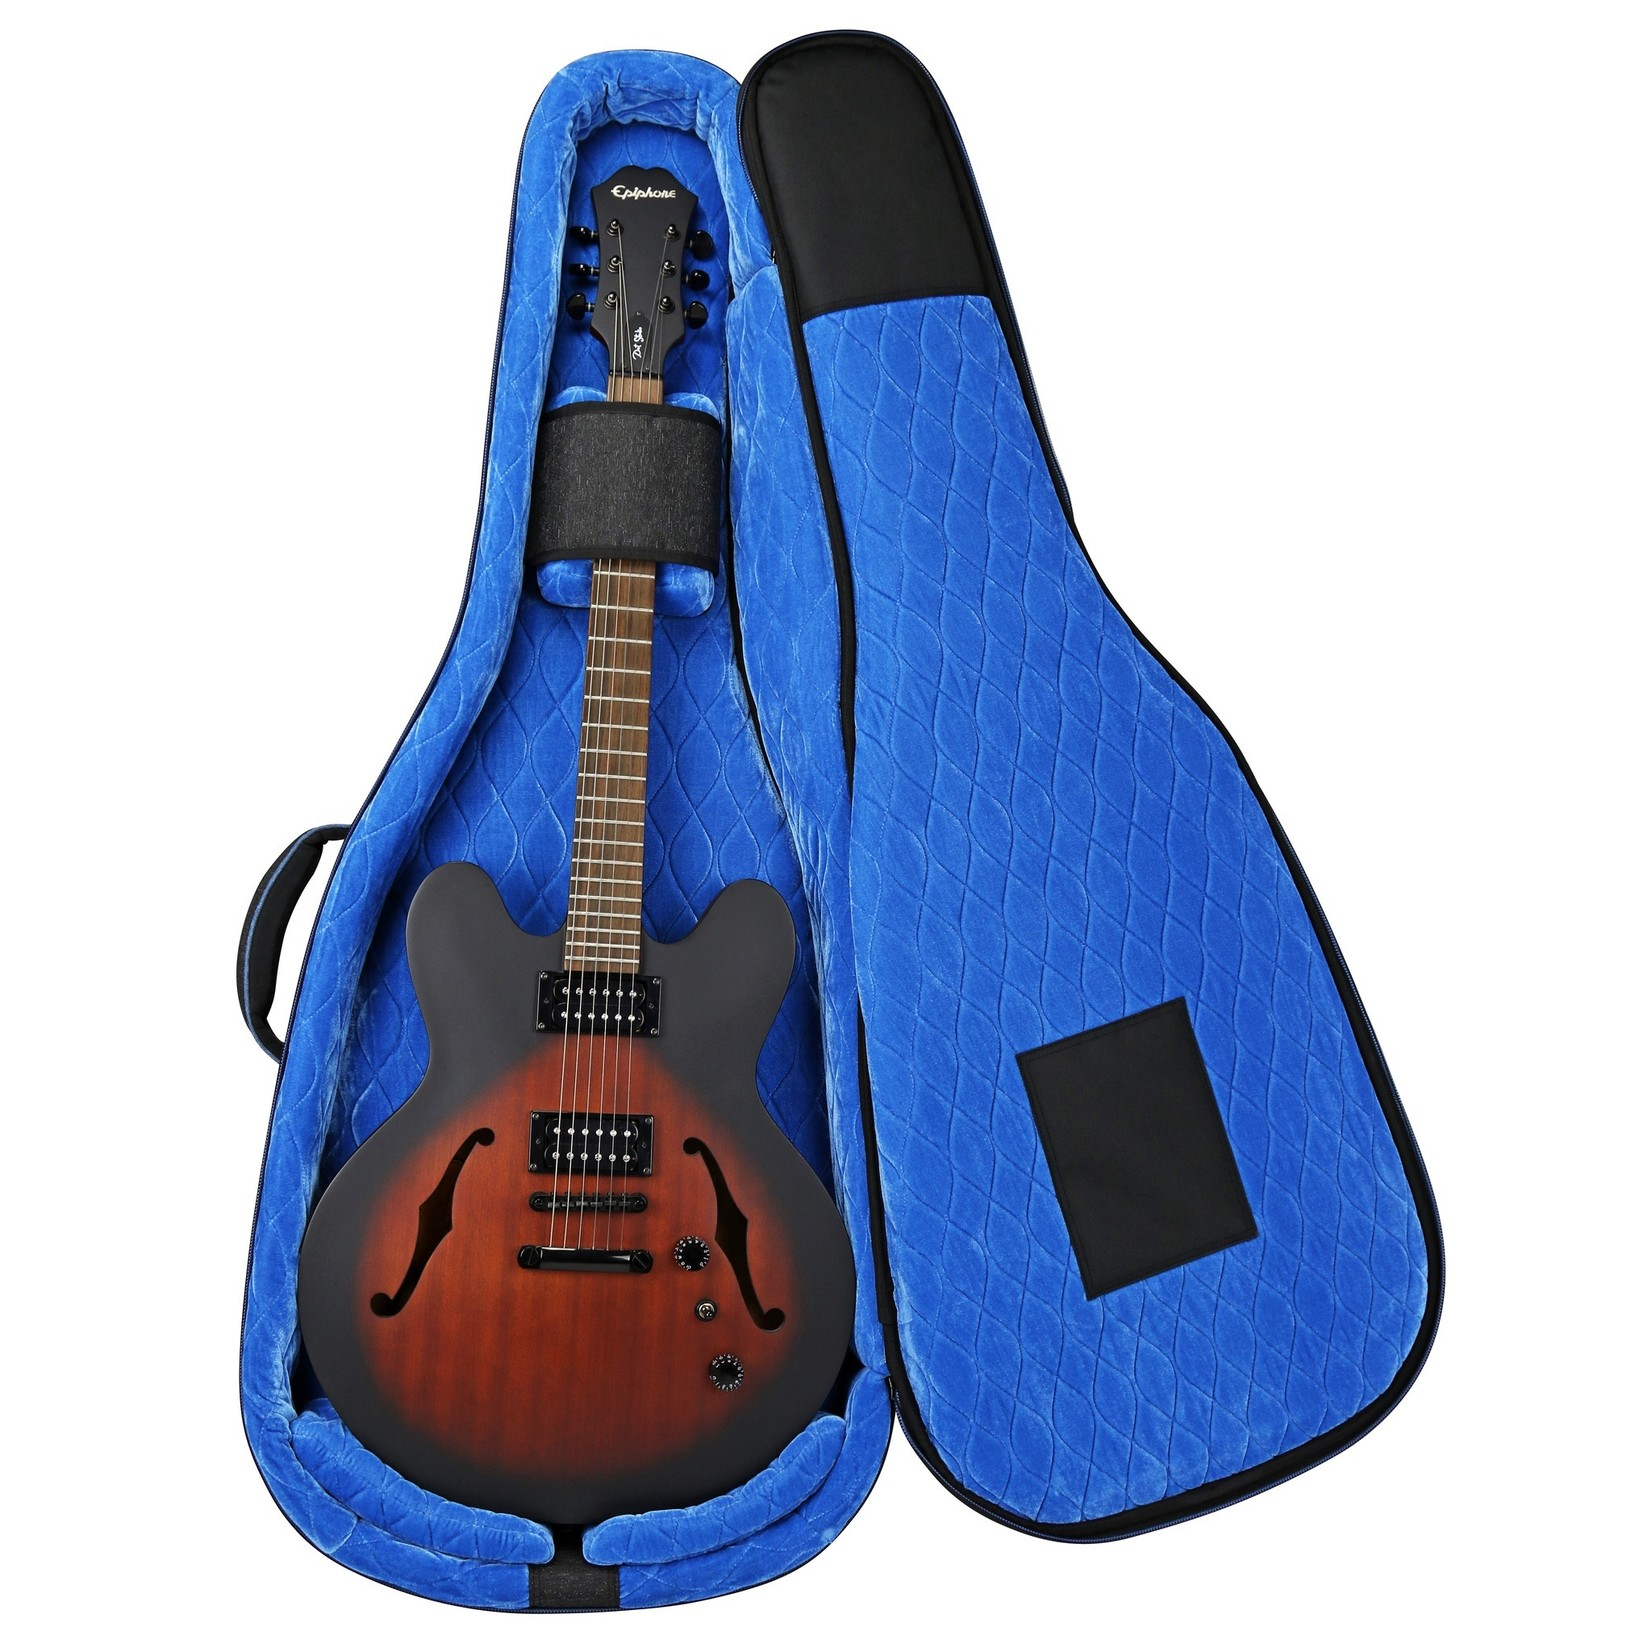 Reunion Blues Reunion Blues RB Continental Voyager Semi-Hollow Body Electric Guitar Case (Gig bag, hybrid, RBCSH)